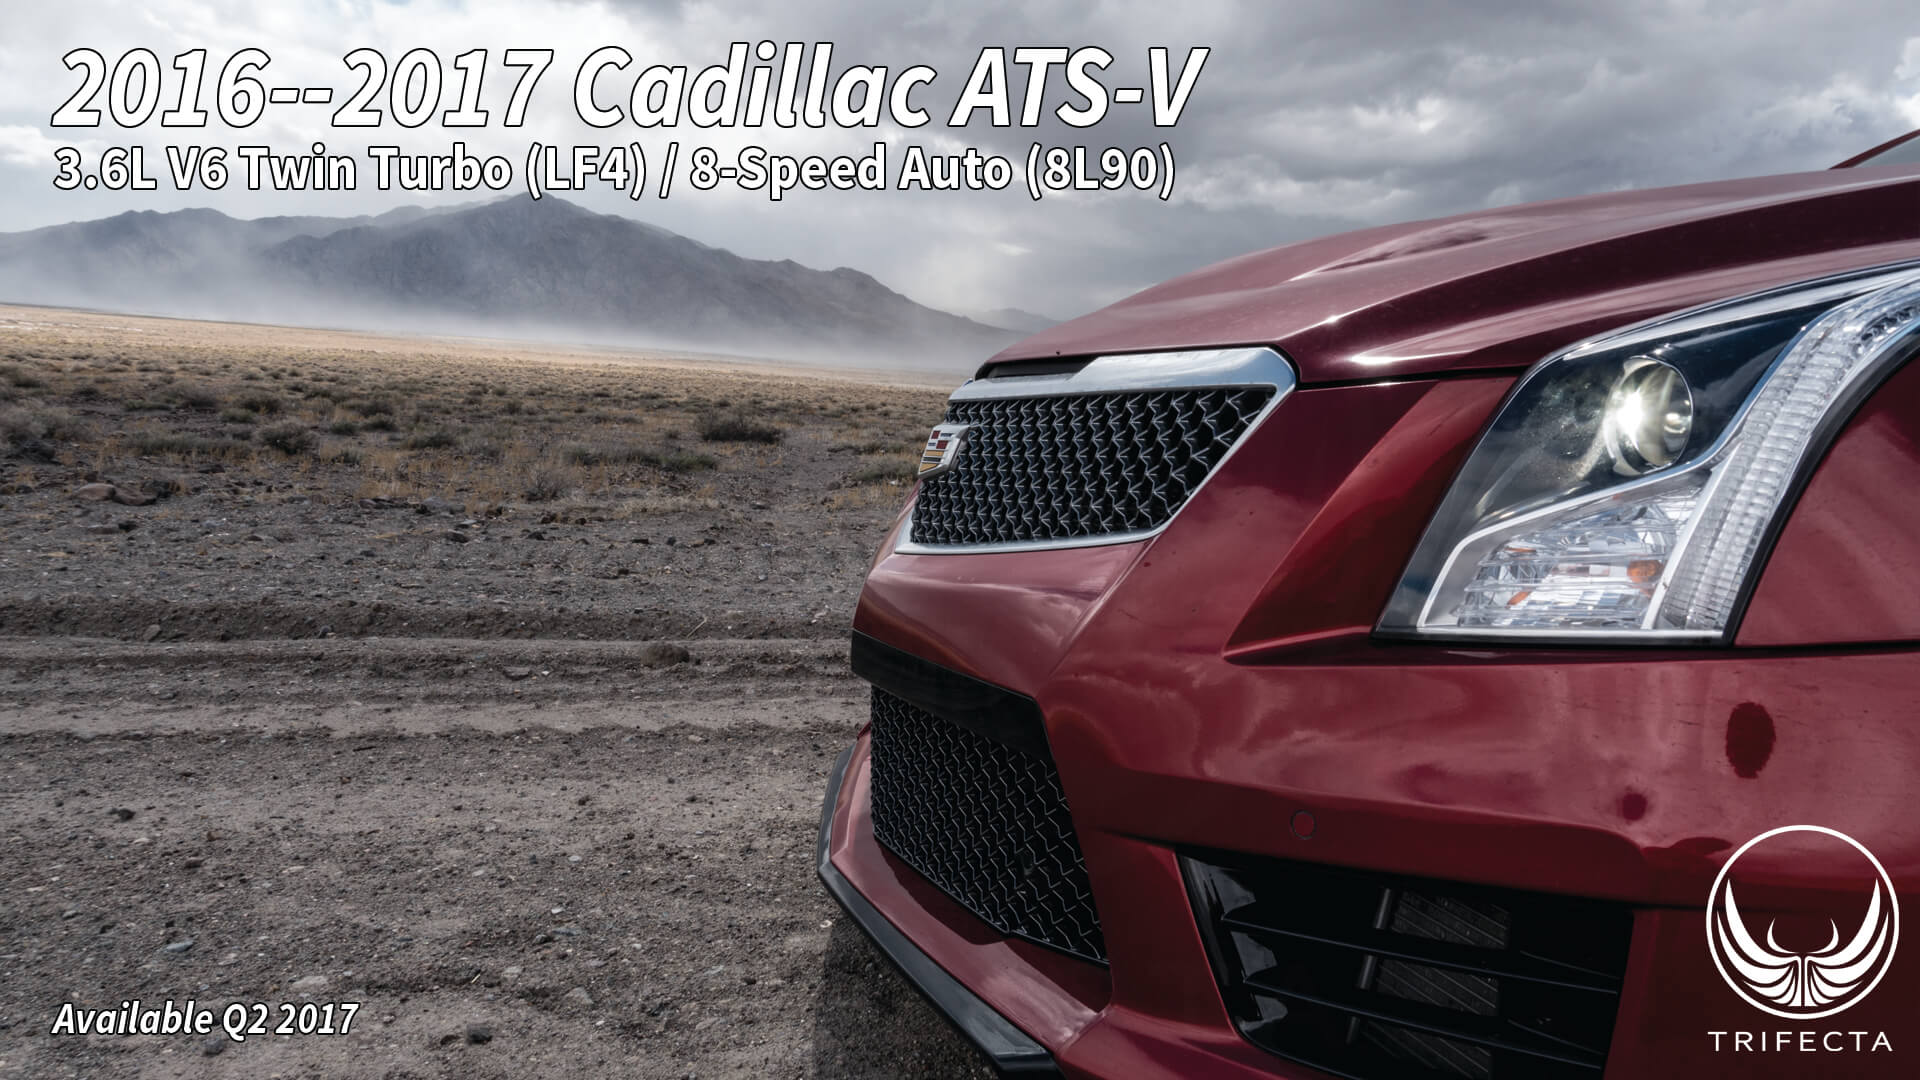 Trifecta cadillac ats v 600hp factory hardware come get some